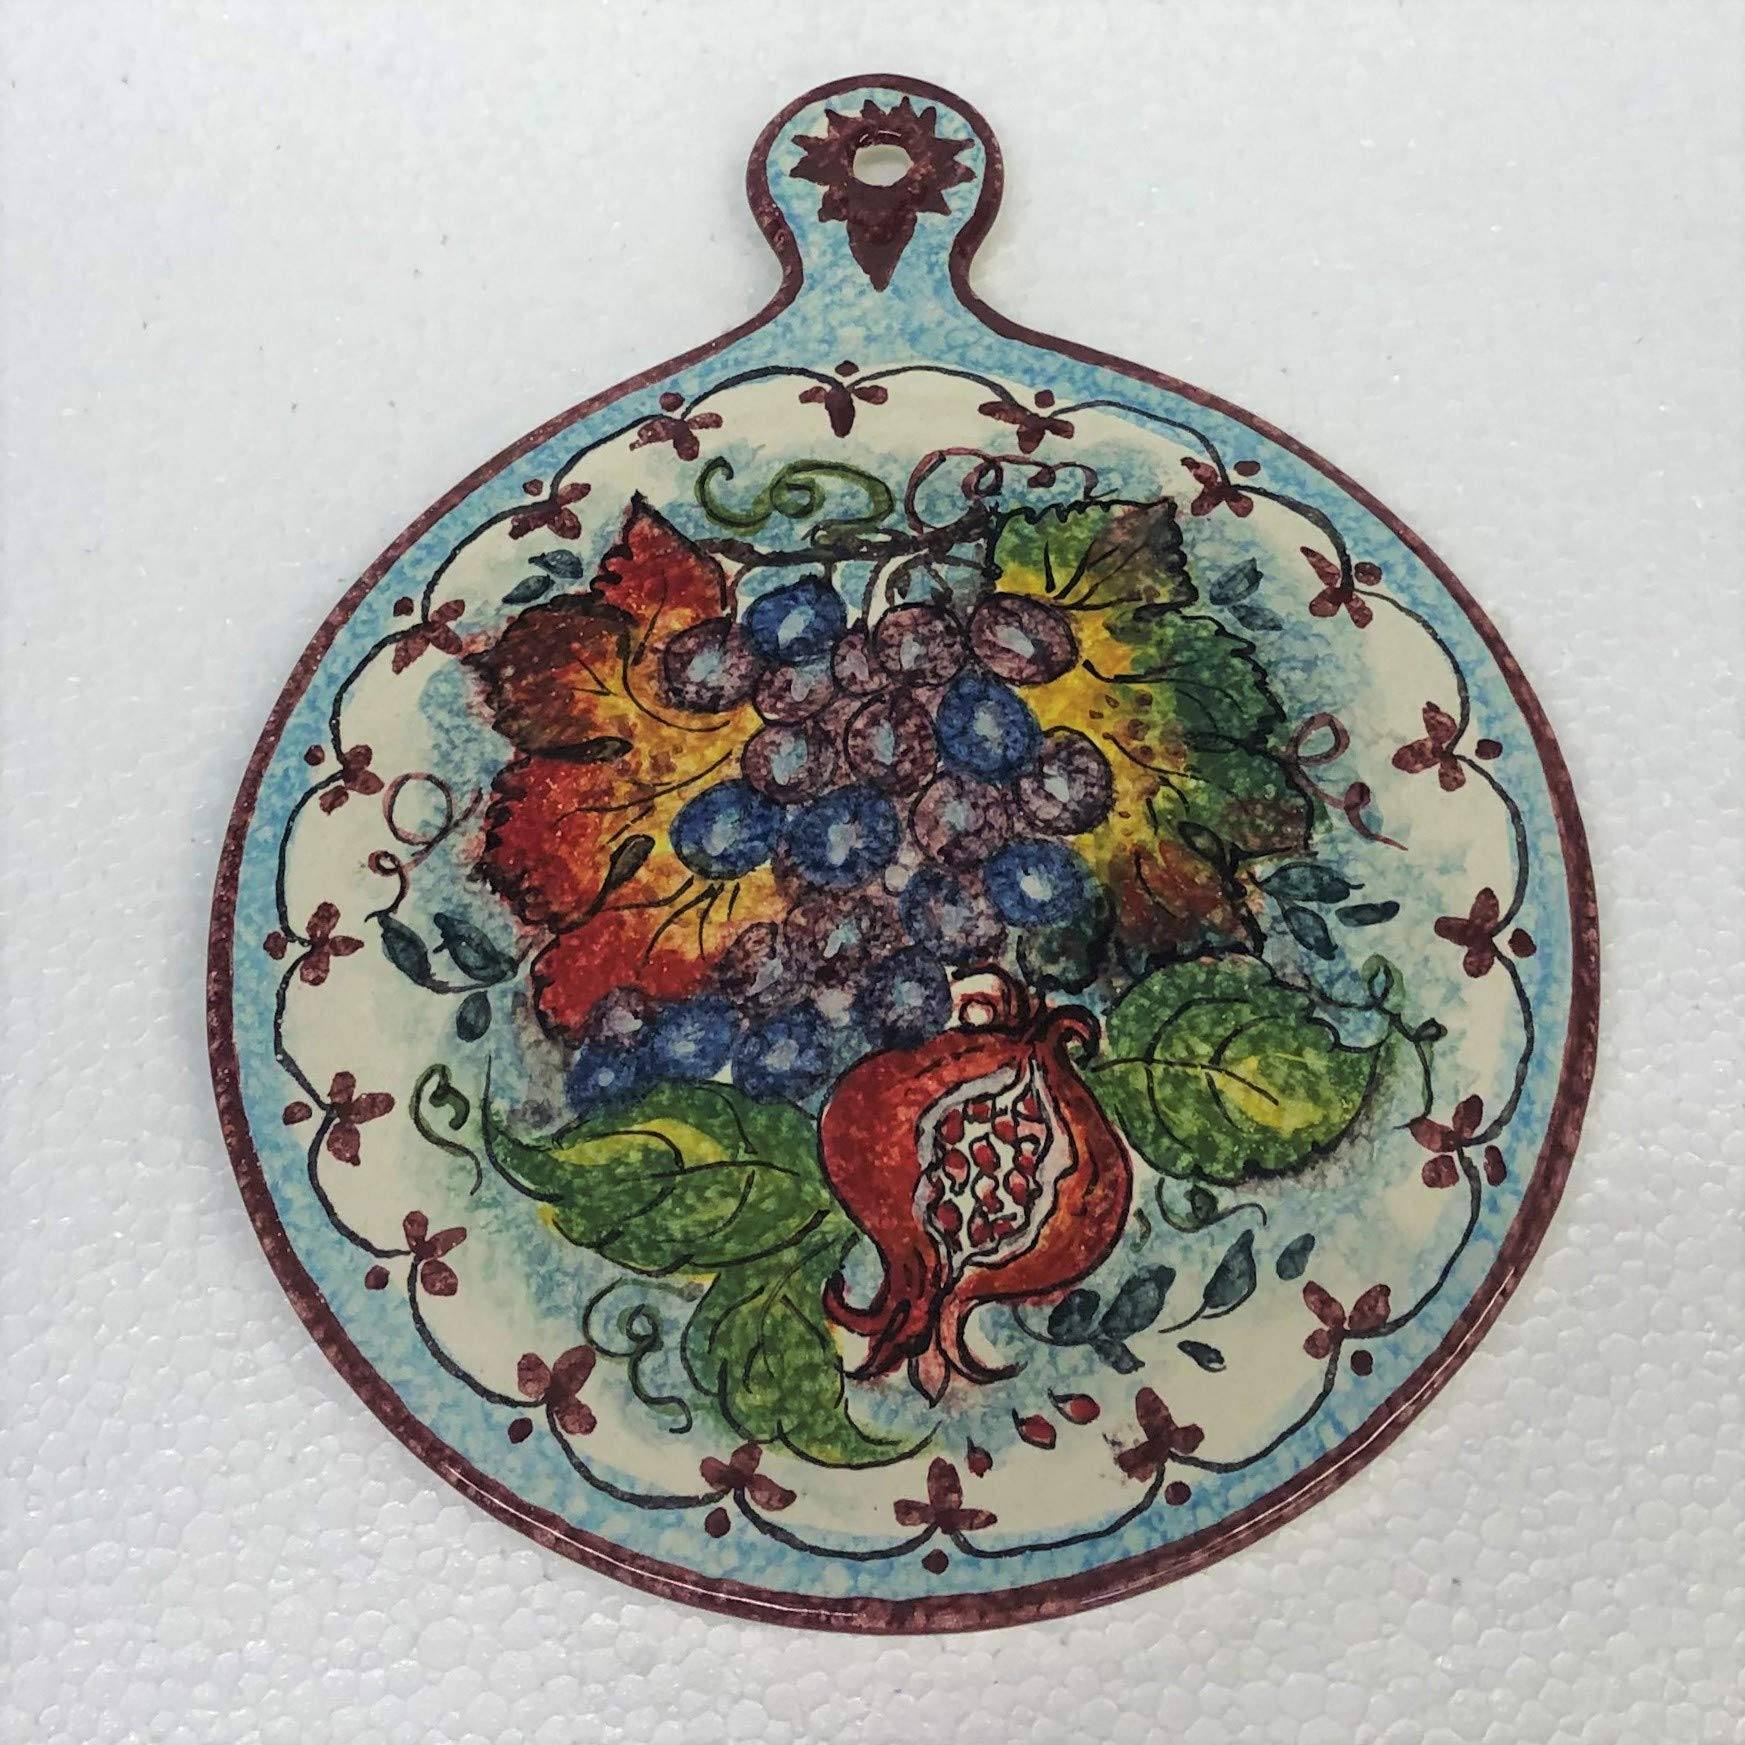 CERAMICHE PARRINI - Italian Ceramic Art Kitchenware Tile Small Trivet Pottery Decorated Tuscan Grape Hand Painted Made in ITALY by CERAMICHE D'ARTE PARRINI since 1979